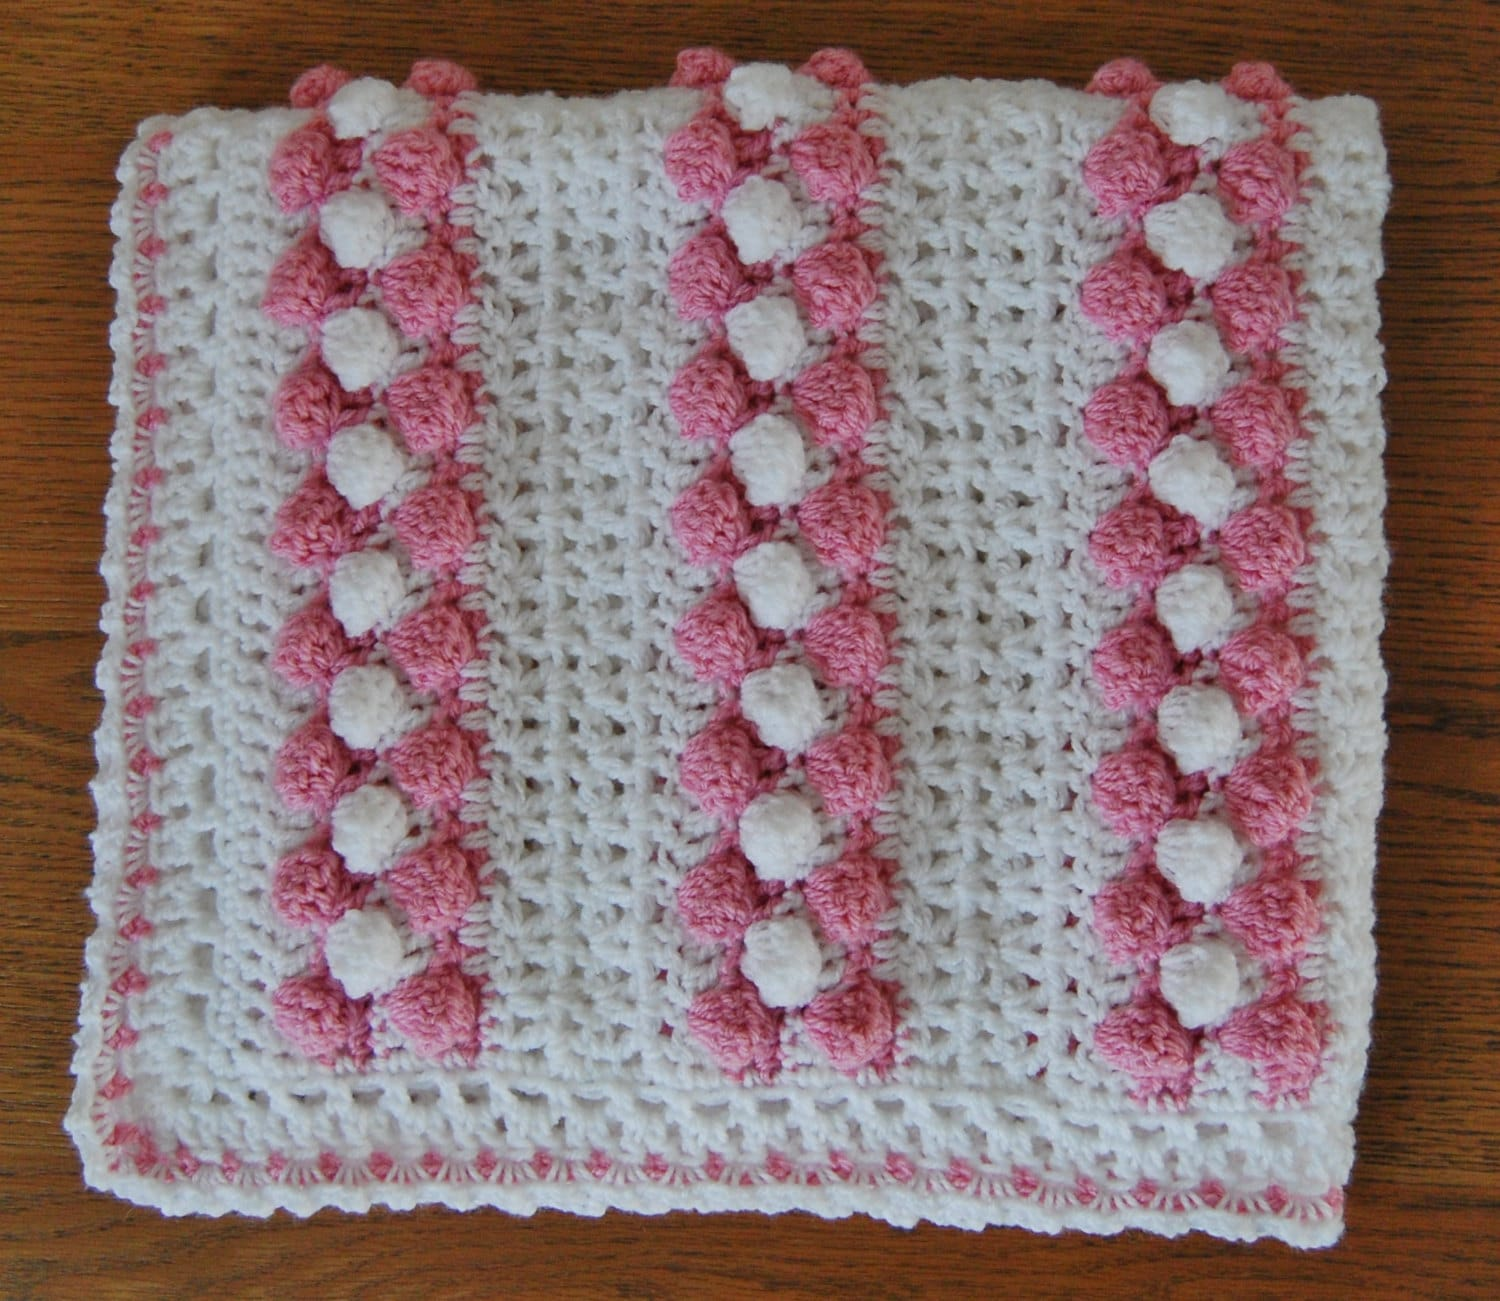 Baby crochet bobble v stitch blanket afghan pattern for pram this is a digital file bankloansurffo Choice Image